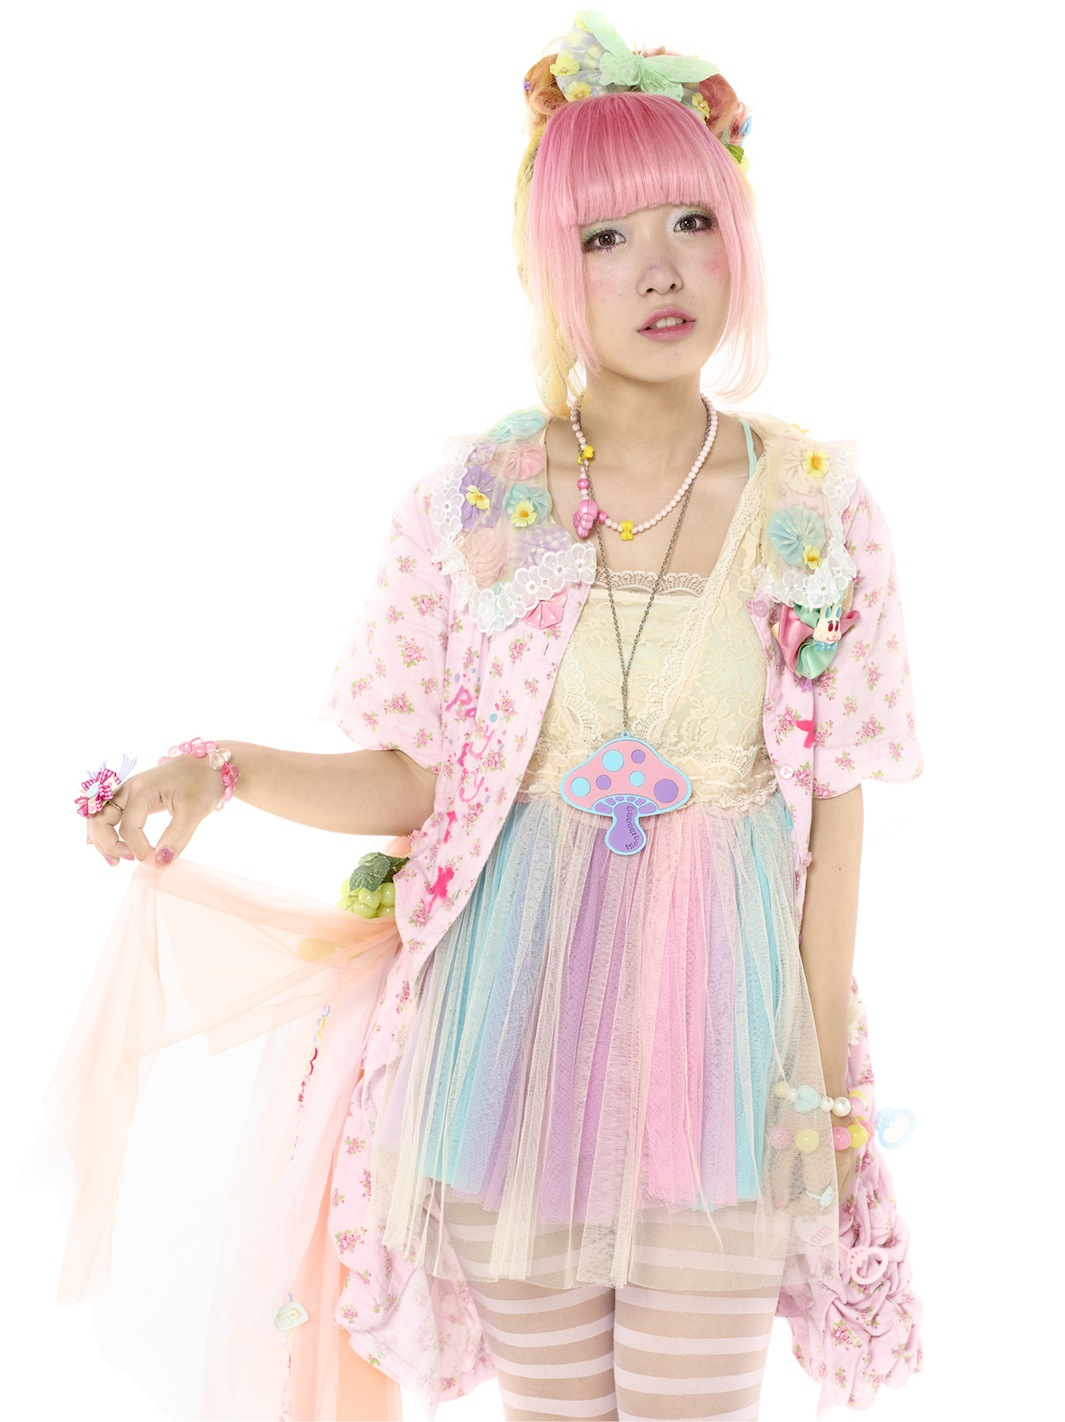 Name: Kumamiki, Fashion Category: Party baby